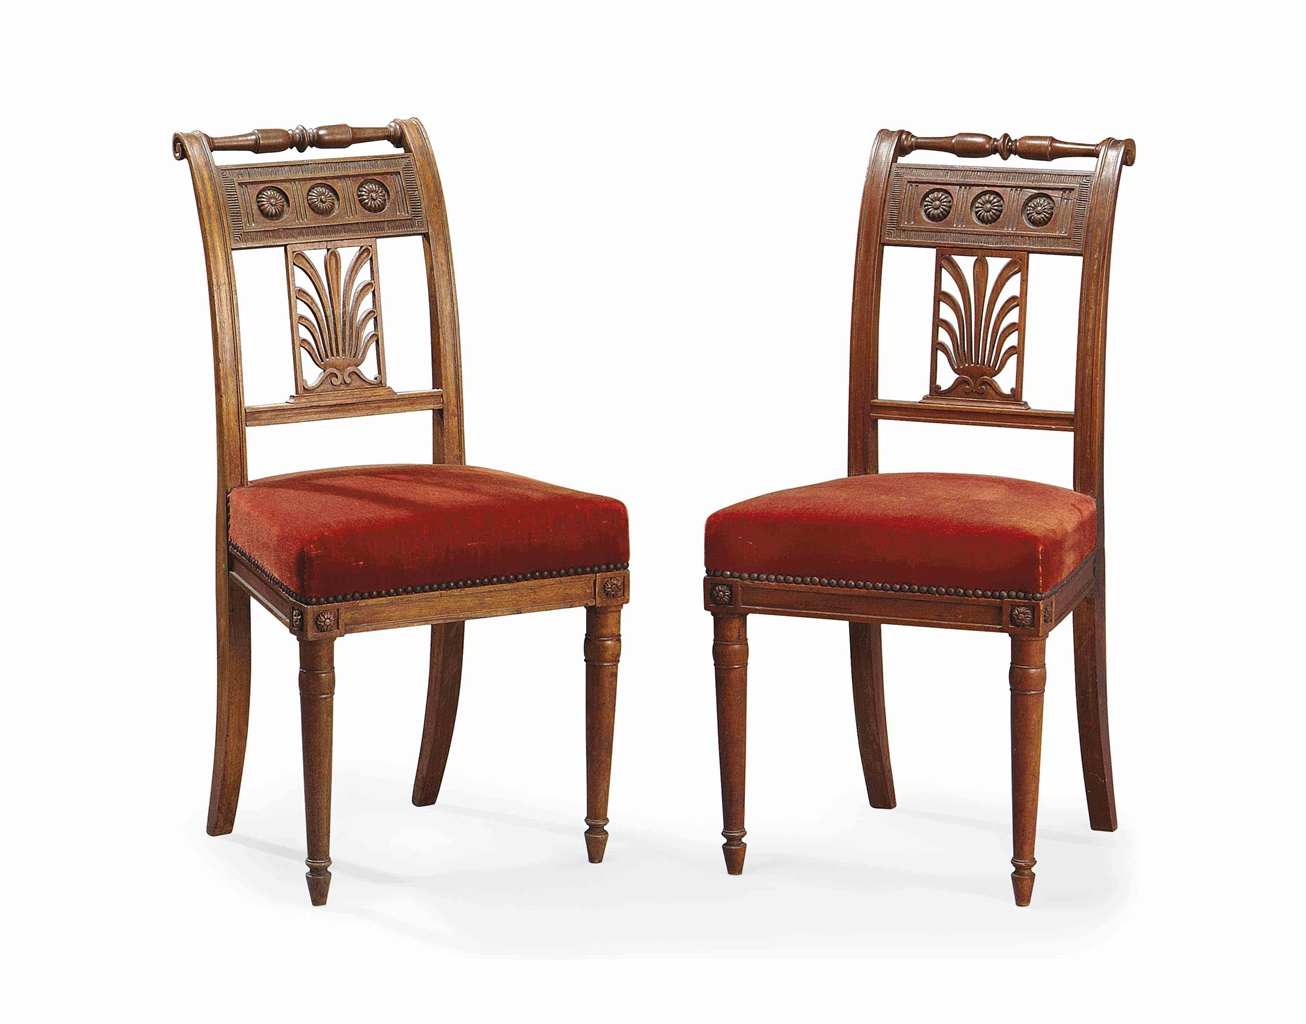 paire de chaises d 39 epoque directoire vers 1800. Black Bedroom Furniture Sets. Home Design Ideas